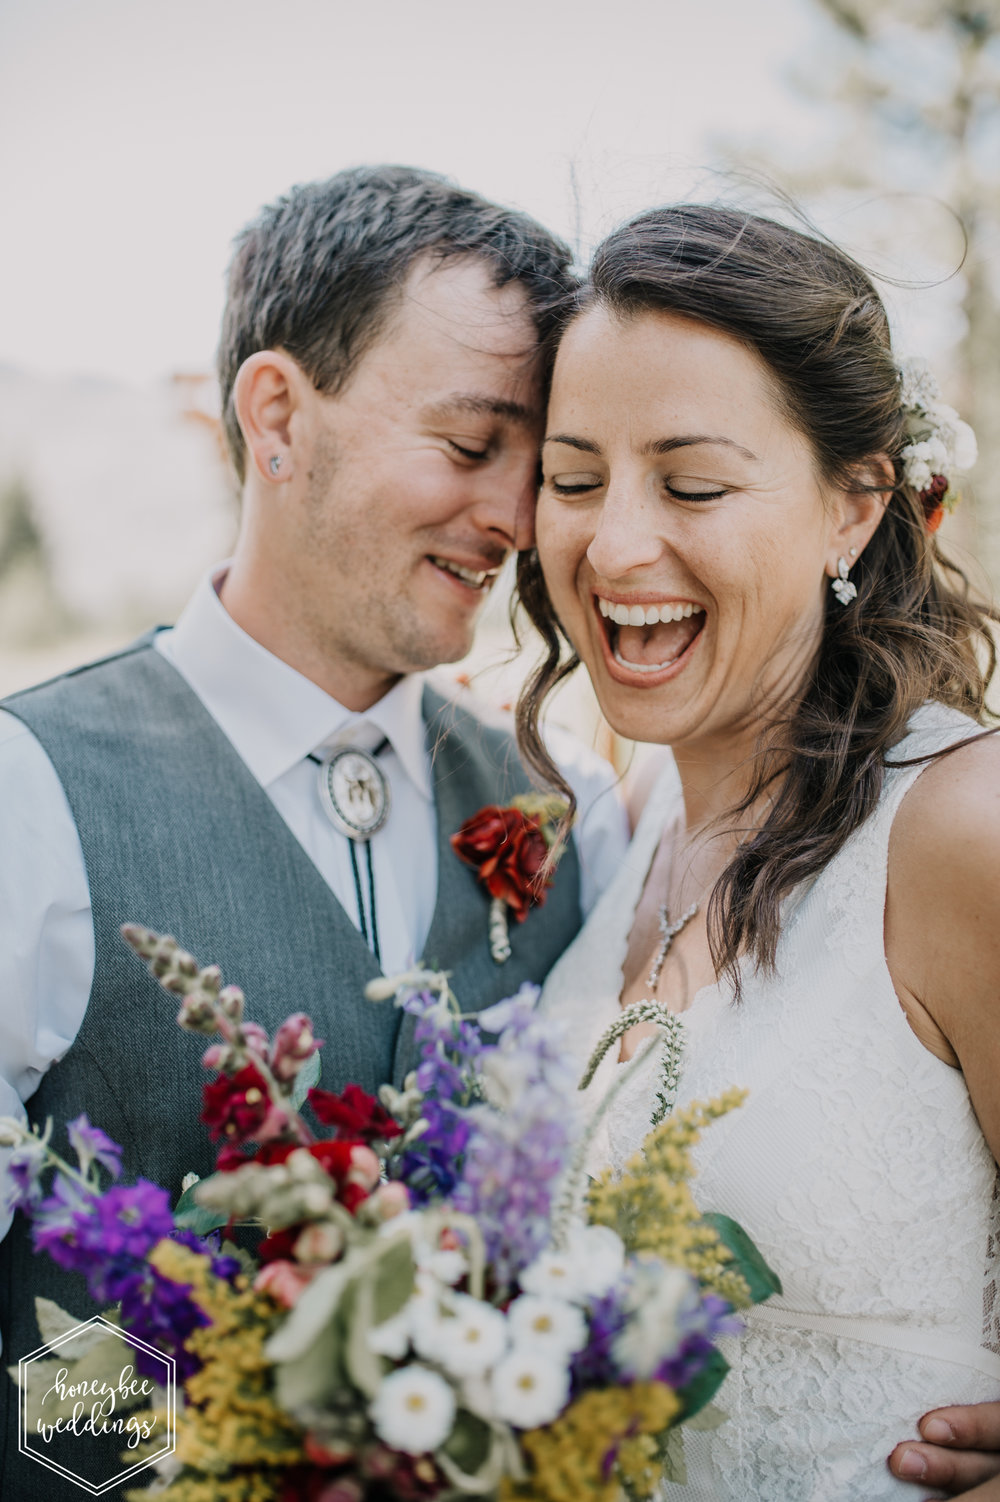 146 White Raven Wedding_Montana Wedding Photographer_Honeybee Weddings_ Meghan Maloney + Arza Hammond 2018-0080-2.jpg